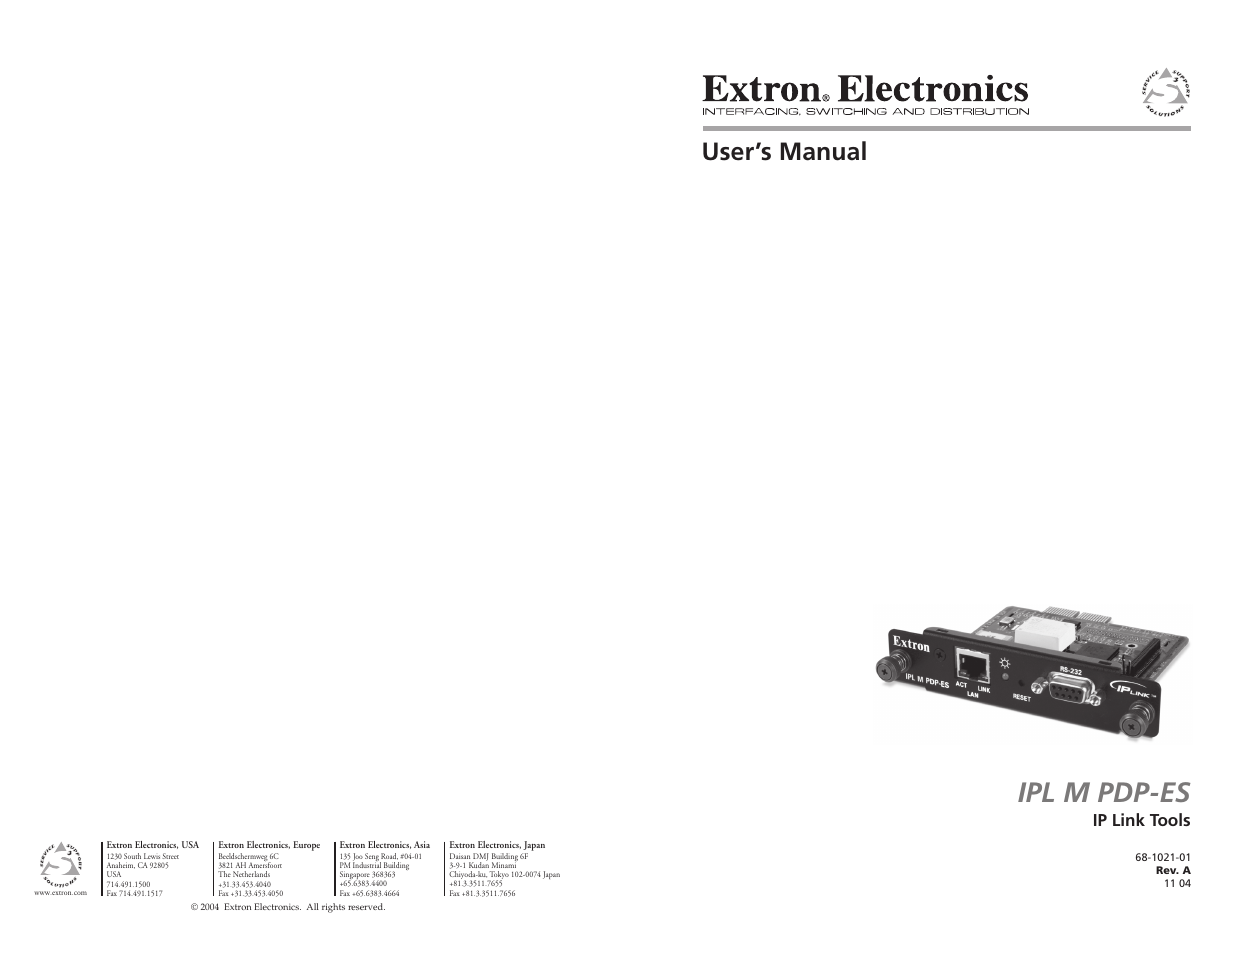 Extron Electronics IPL M PDP-ES User Guide User Manual | 36 pages